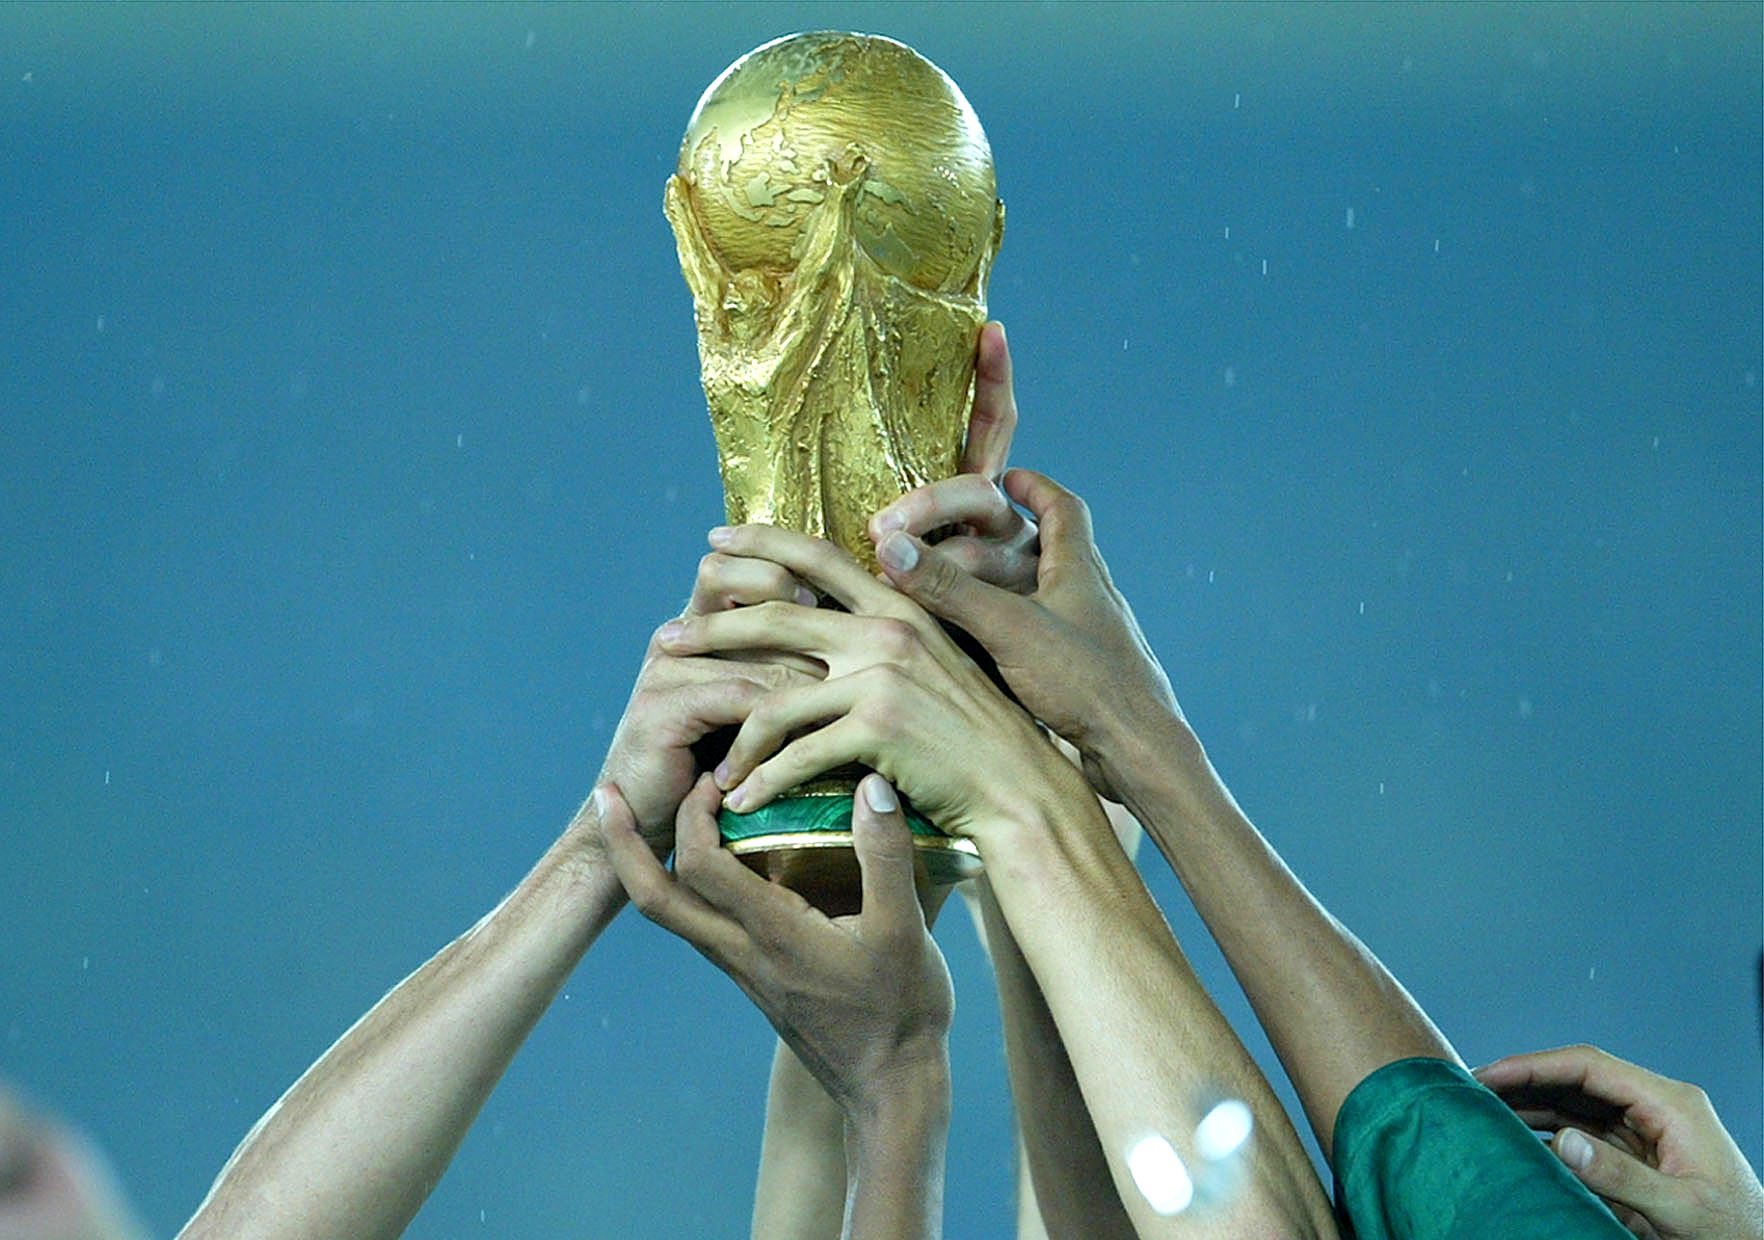 2002 FIFA World Cup, Cheering, Brazil won the World Cup